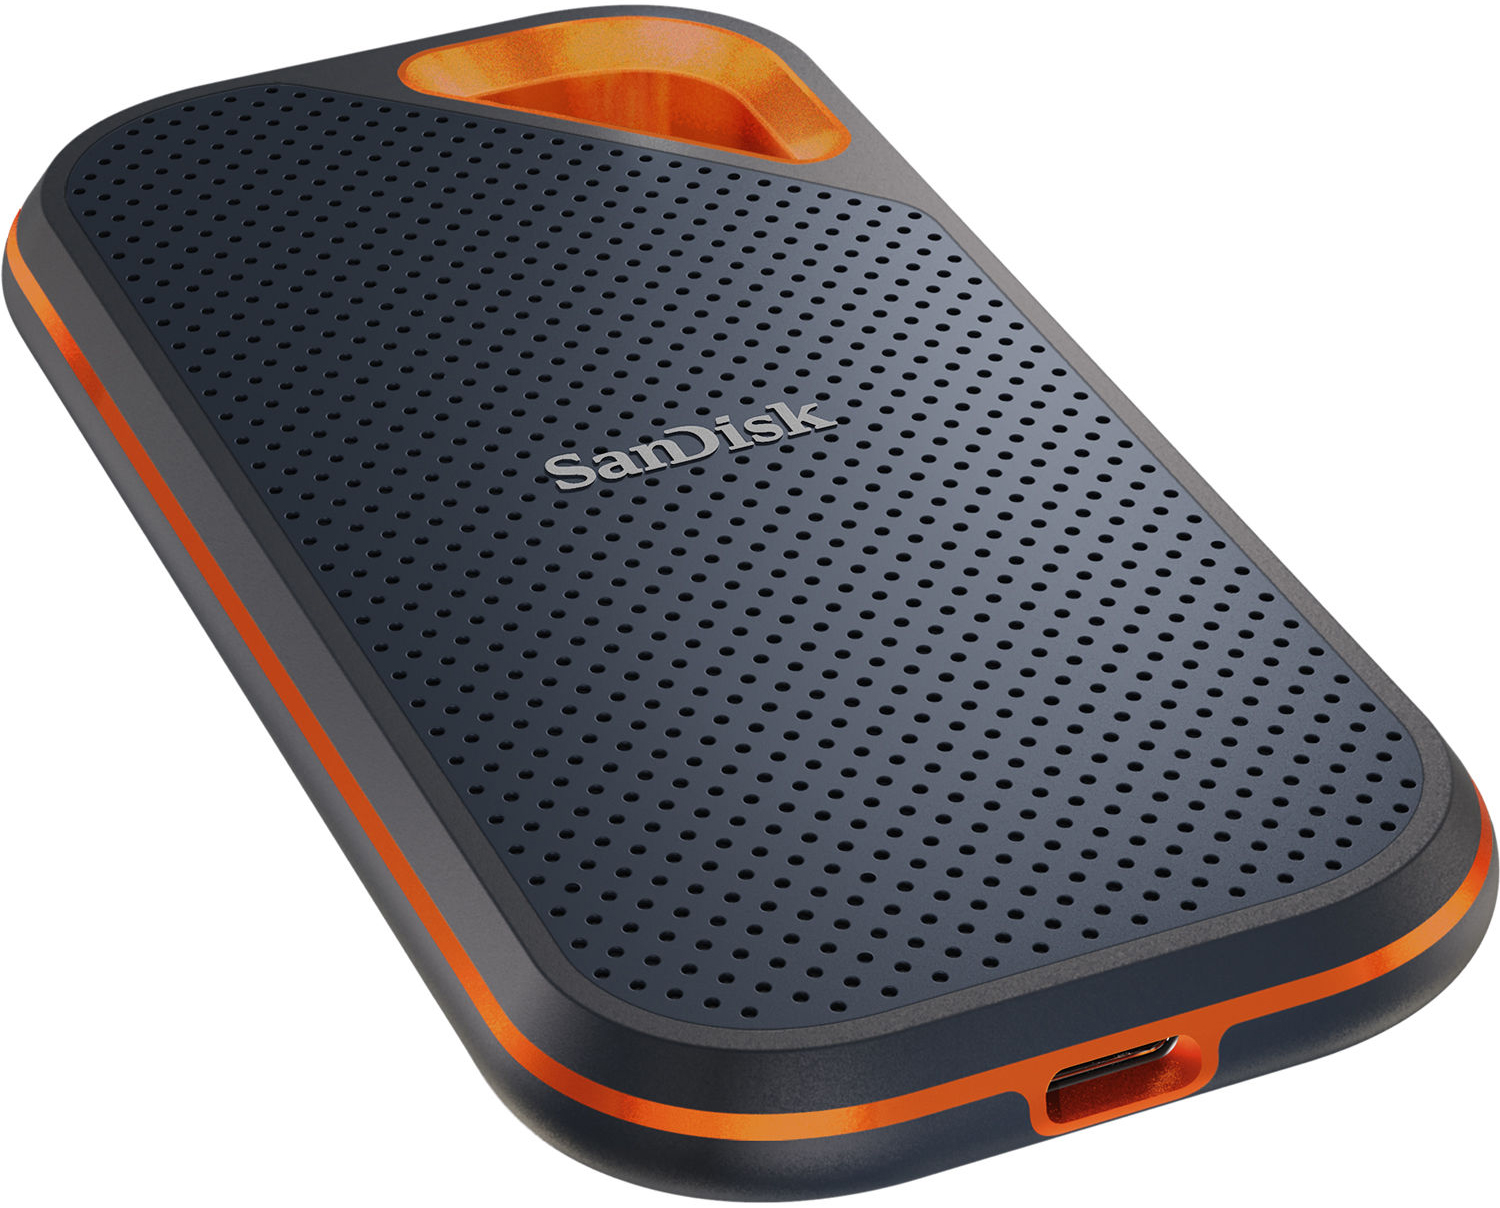 SanDisk Extreme Pro Portable SSDs: Boosted Transfer Speeds